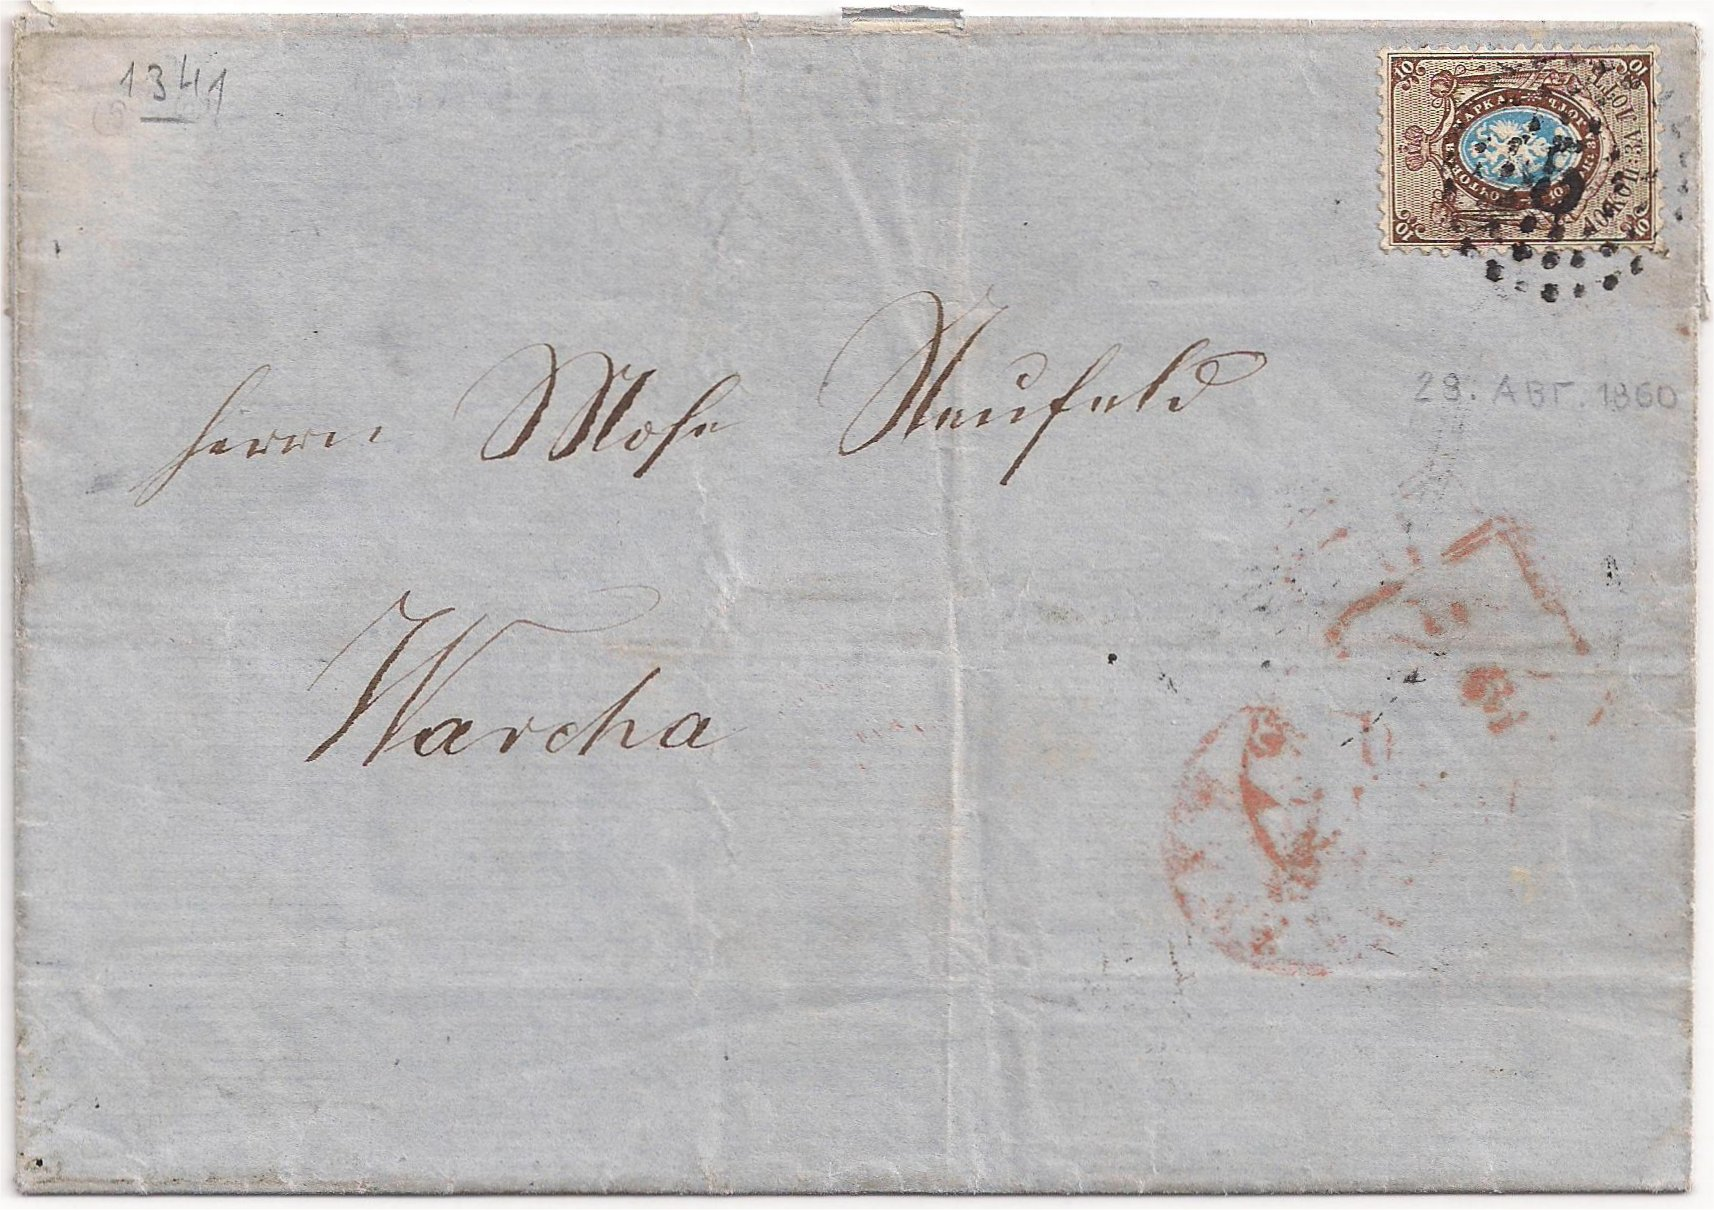 Letter from Vilnius (WILNO) naar Warsaw, 1860. Dotted postmark, three circles with number 5. This number is the indication for Vilonius. Stamp is Mi. 5, 10 kopecks.